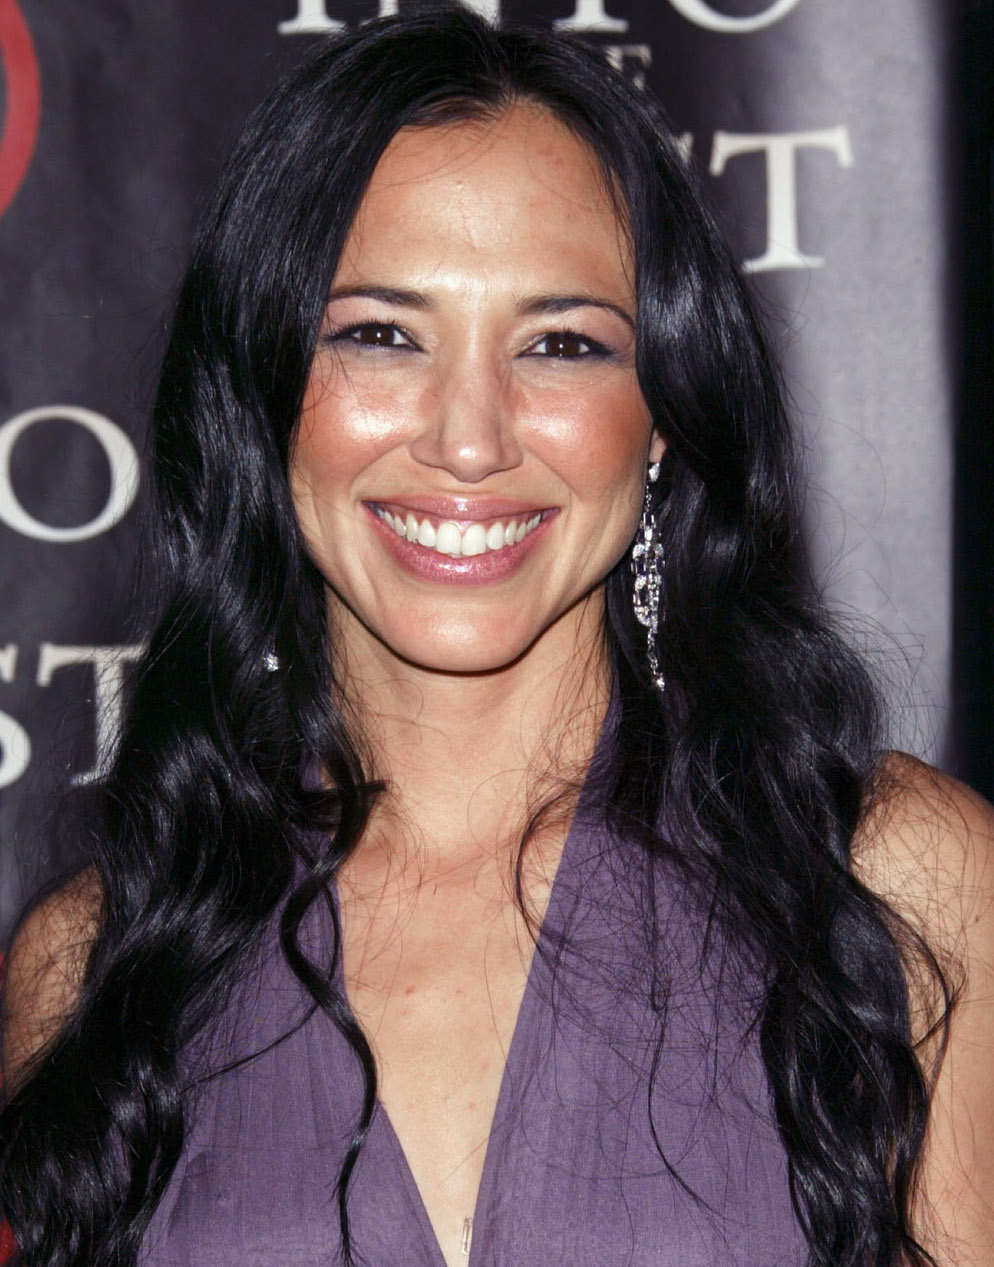 Irene Bedard nude photos 2019